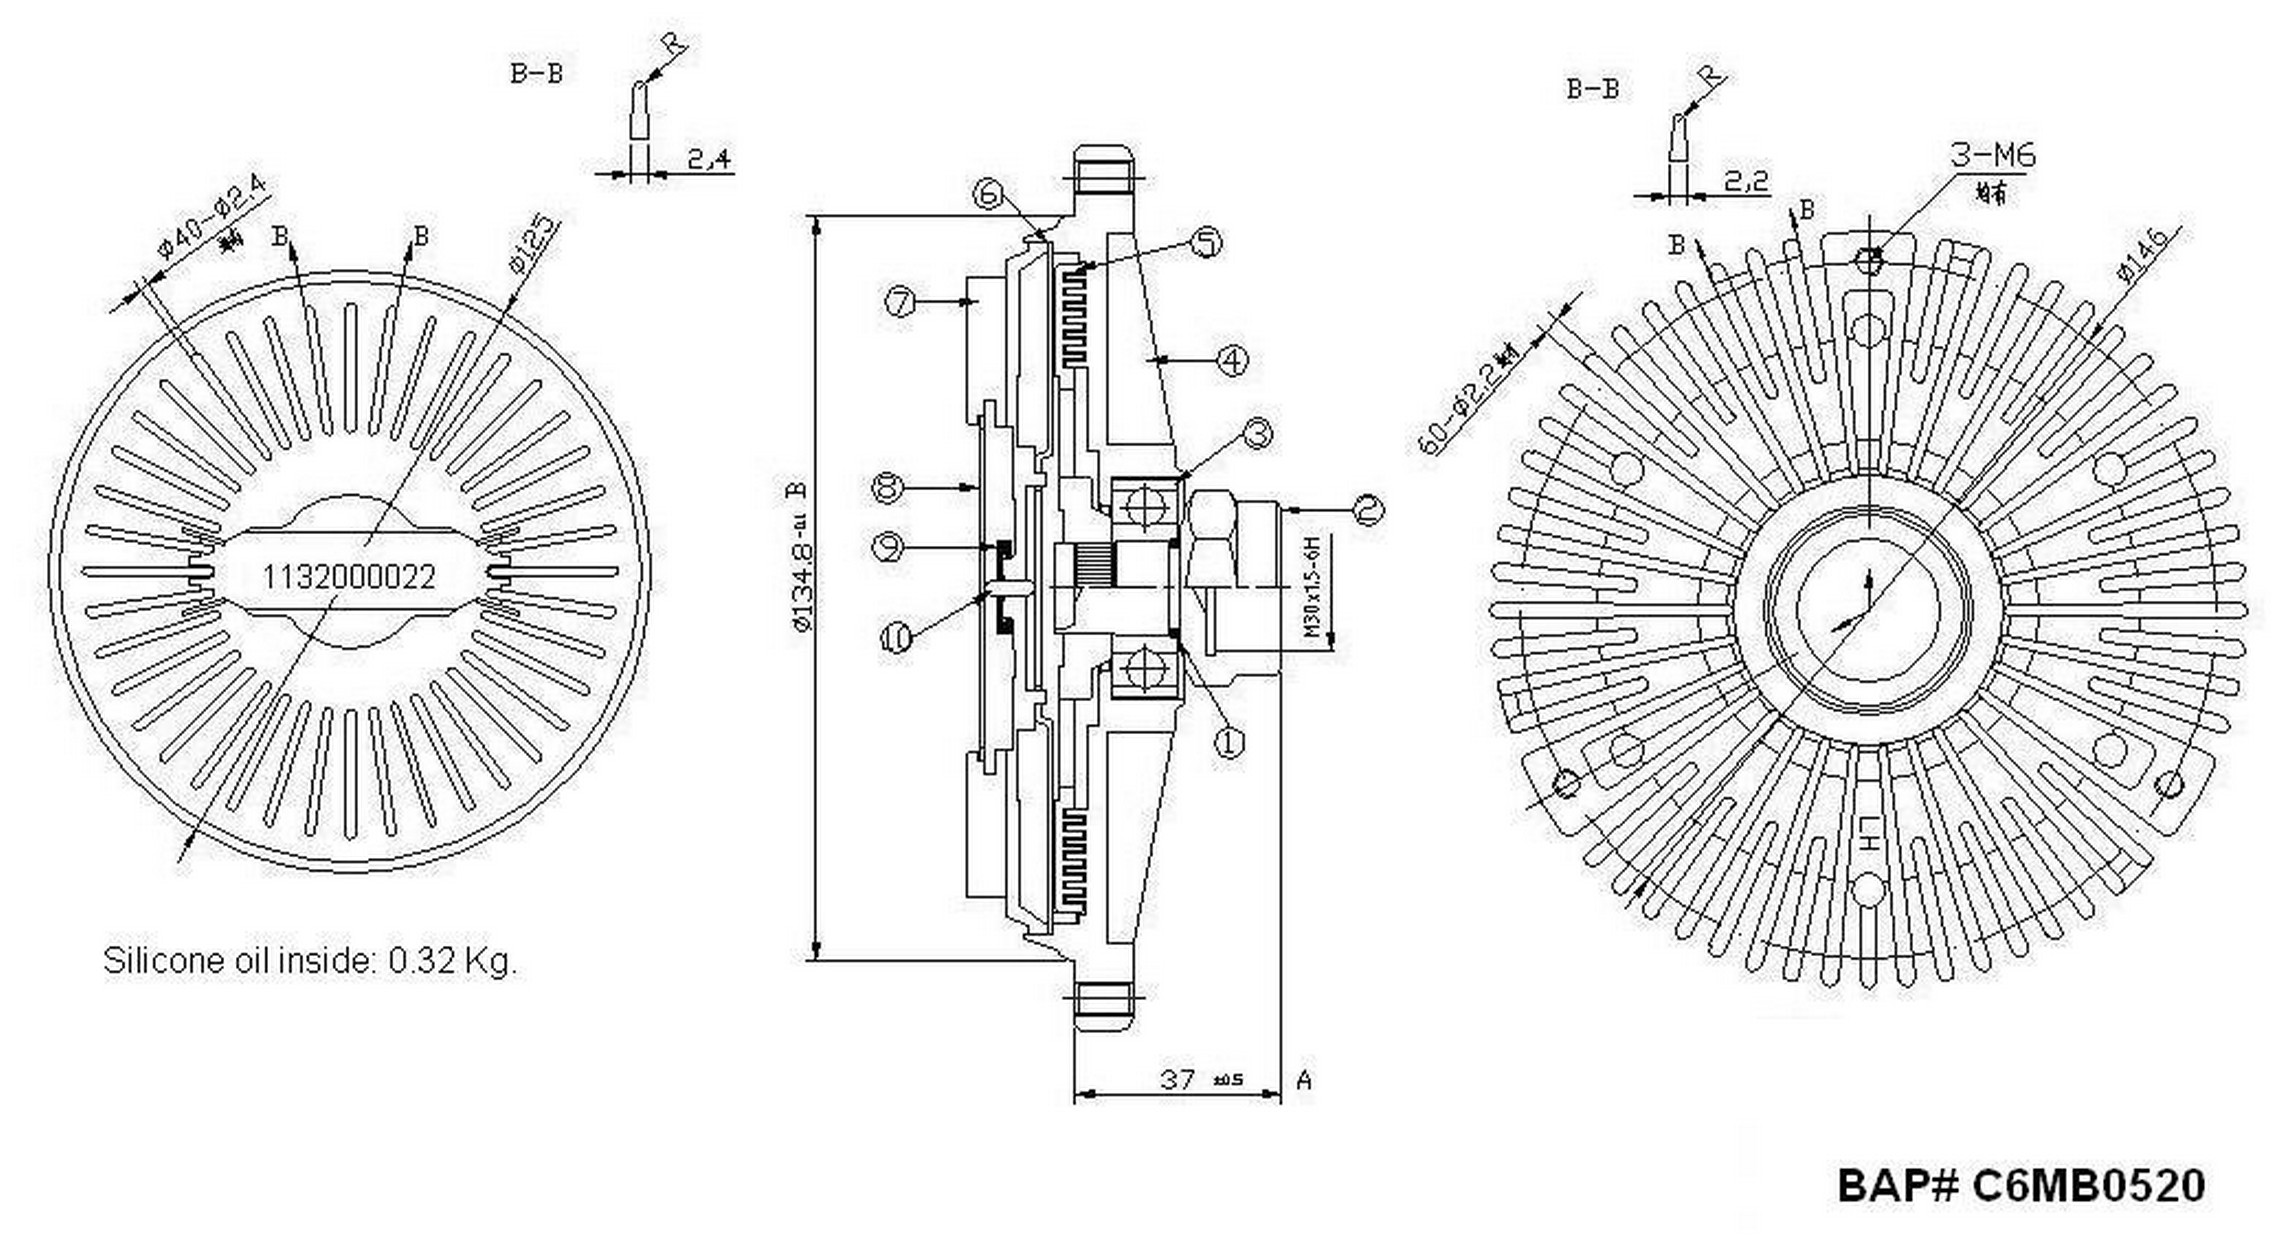 hella behr 376732531 engine cooling fan clutch for mercedes benz 1997 e420 amg e420 engine diagram [ 2272 x 1258 Pixel ]